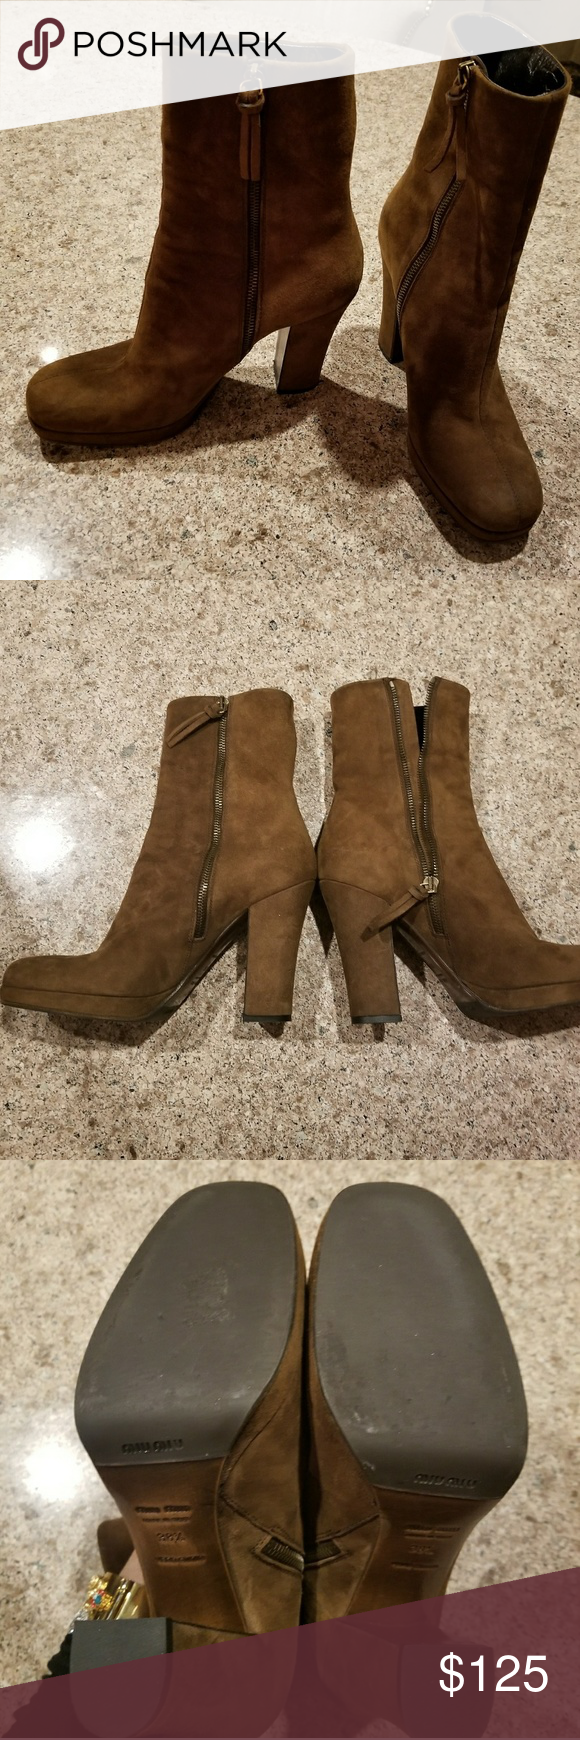 d48b51620f2 Miu Miu Brown Suede Boots Booties Miu Miu Brown Suede Boots Booties 38.5.  Fun and a rare find. Great condition Miu Miu Shoes Ankle Boots   Booties